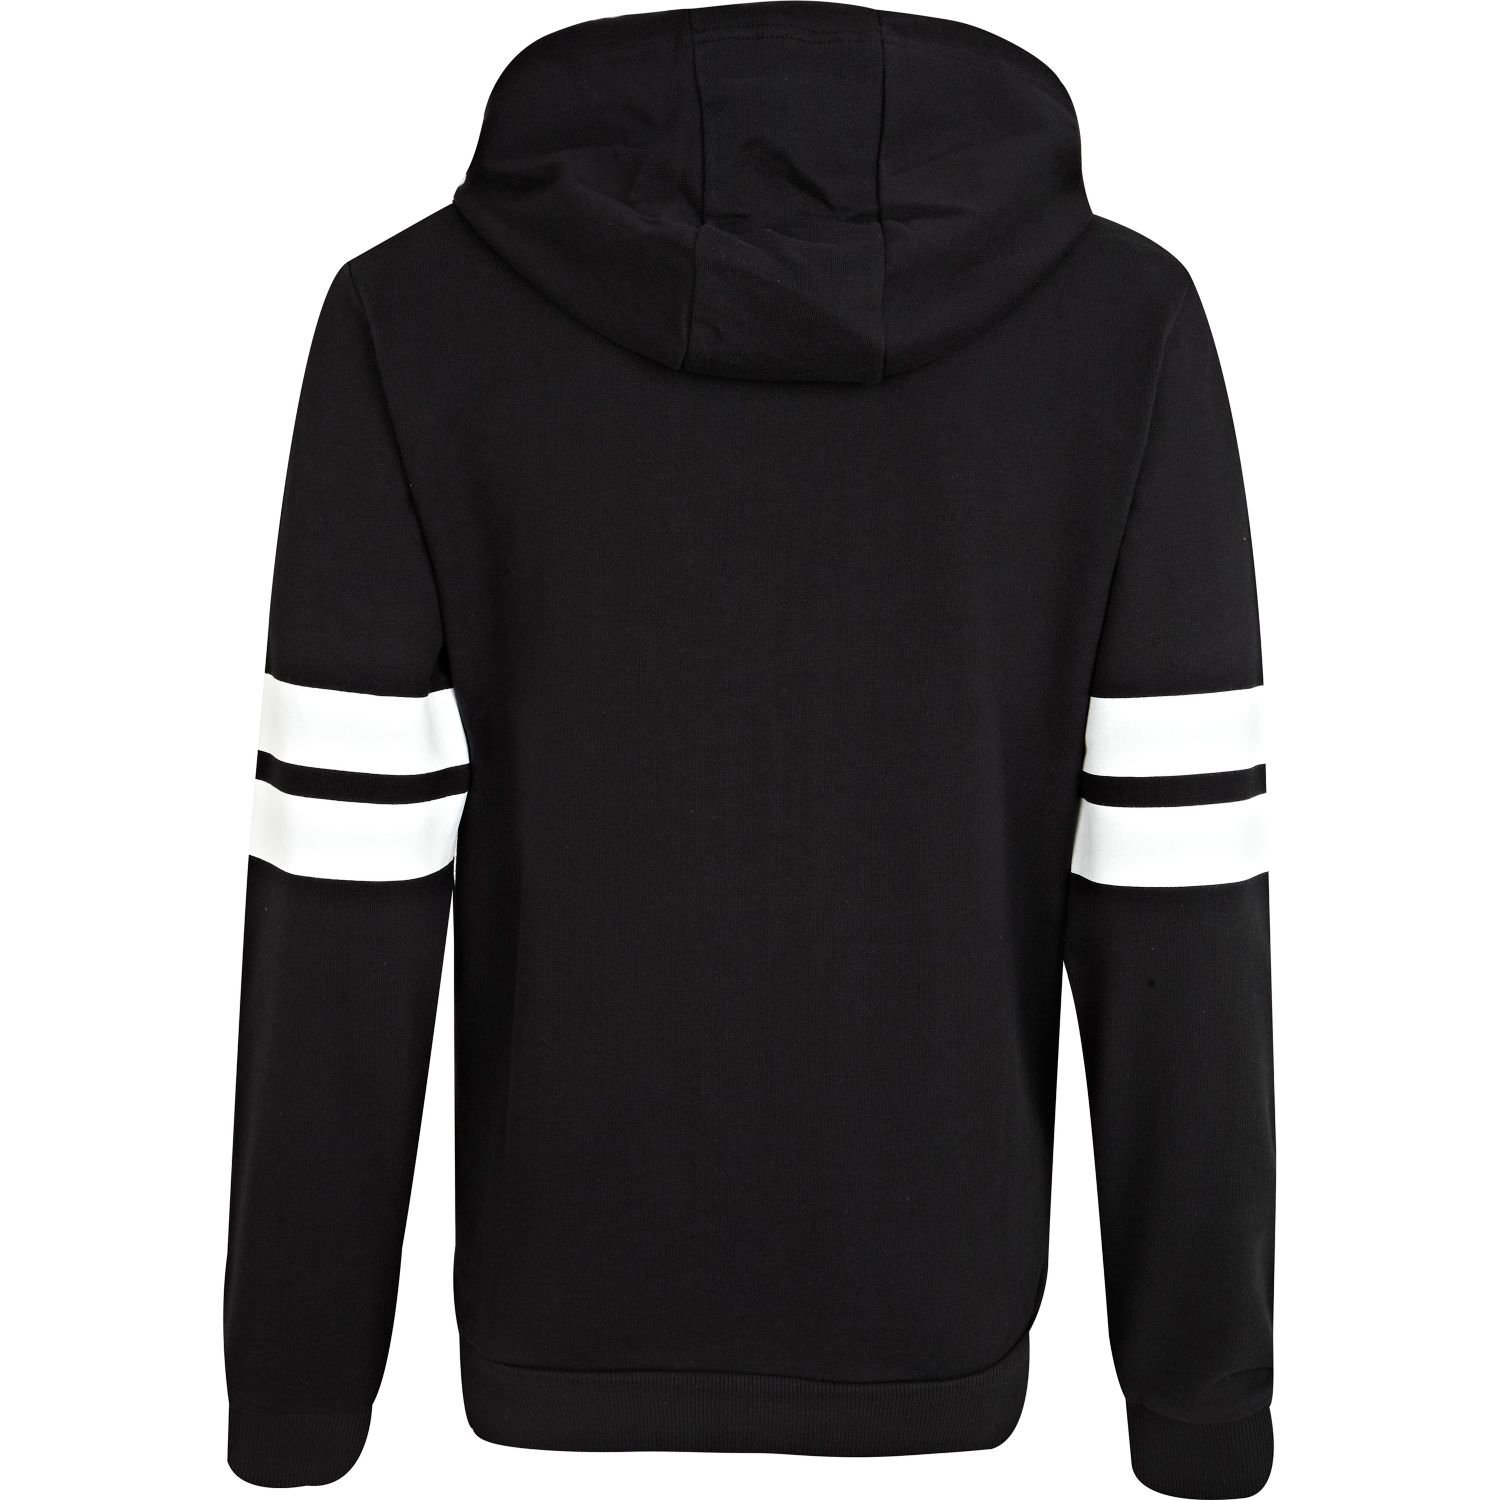 Black Hoodie With White Sleeves